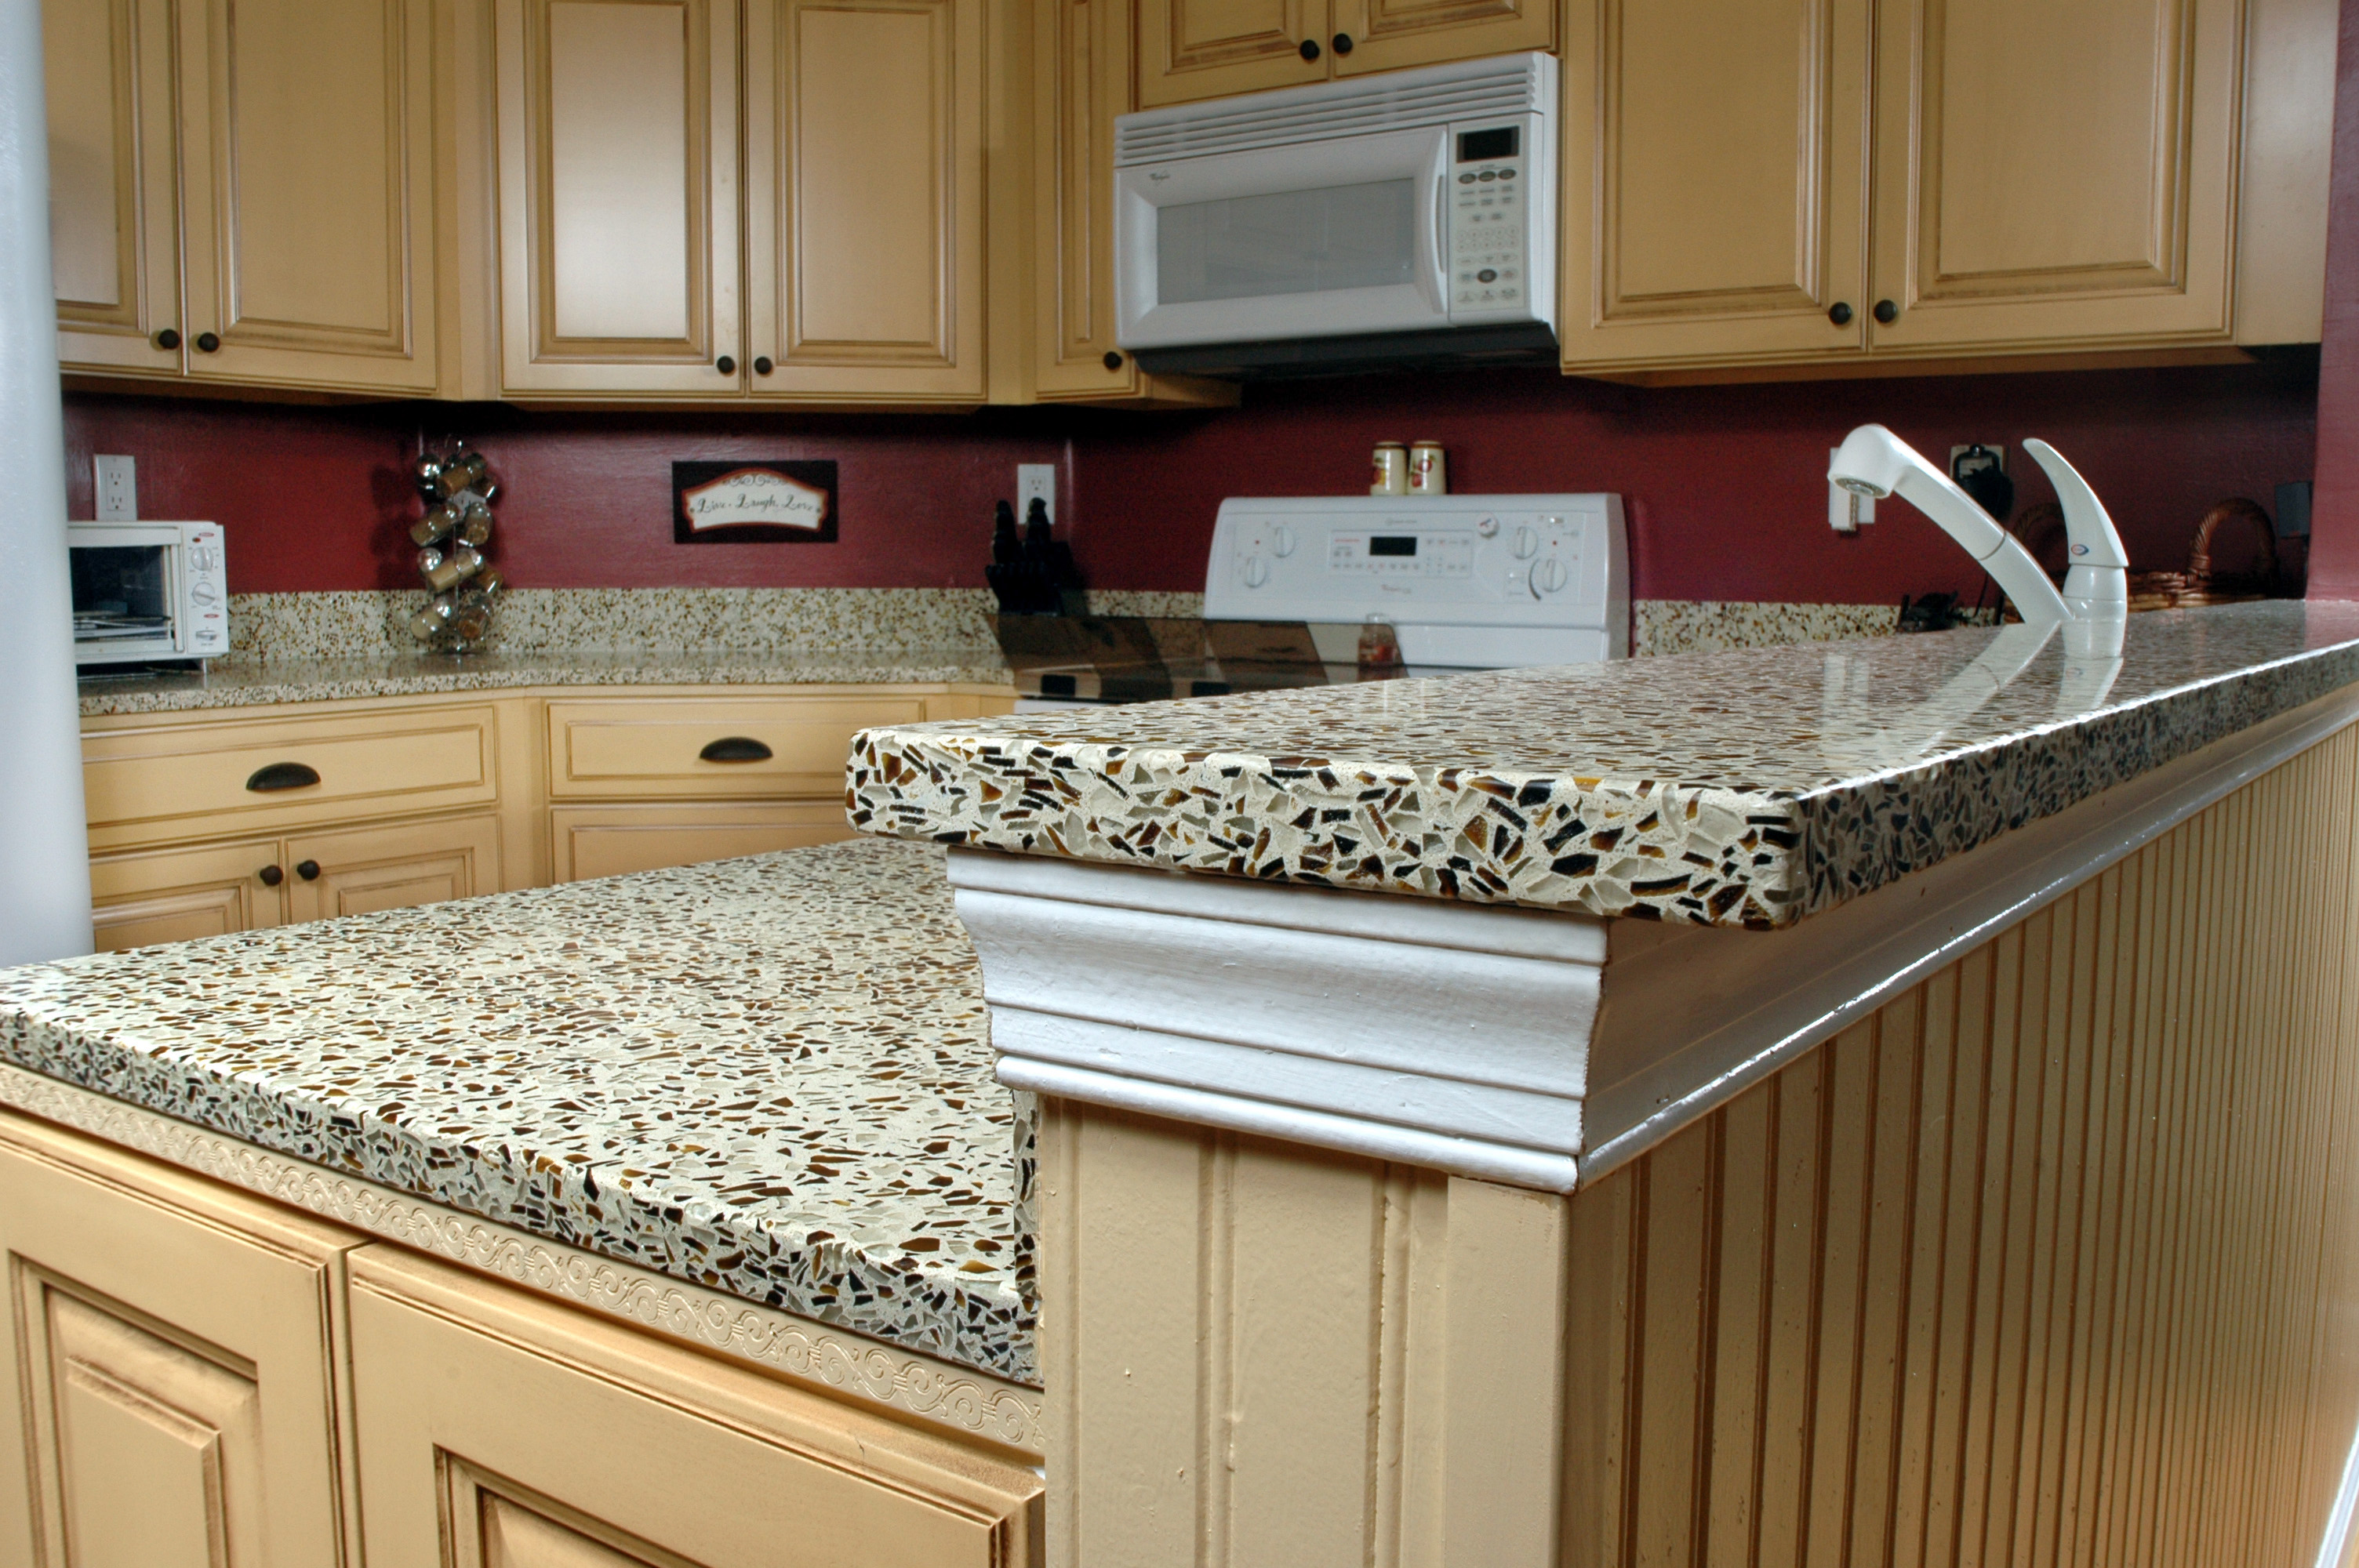 painting kitchen countertops ideas cheap kitchen countertops Elegant Brown Painting Kitchen Countertops Ideas Image 5 of 10